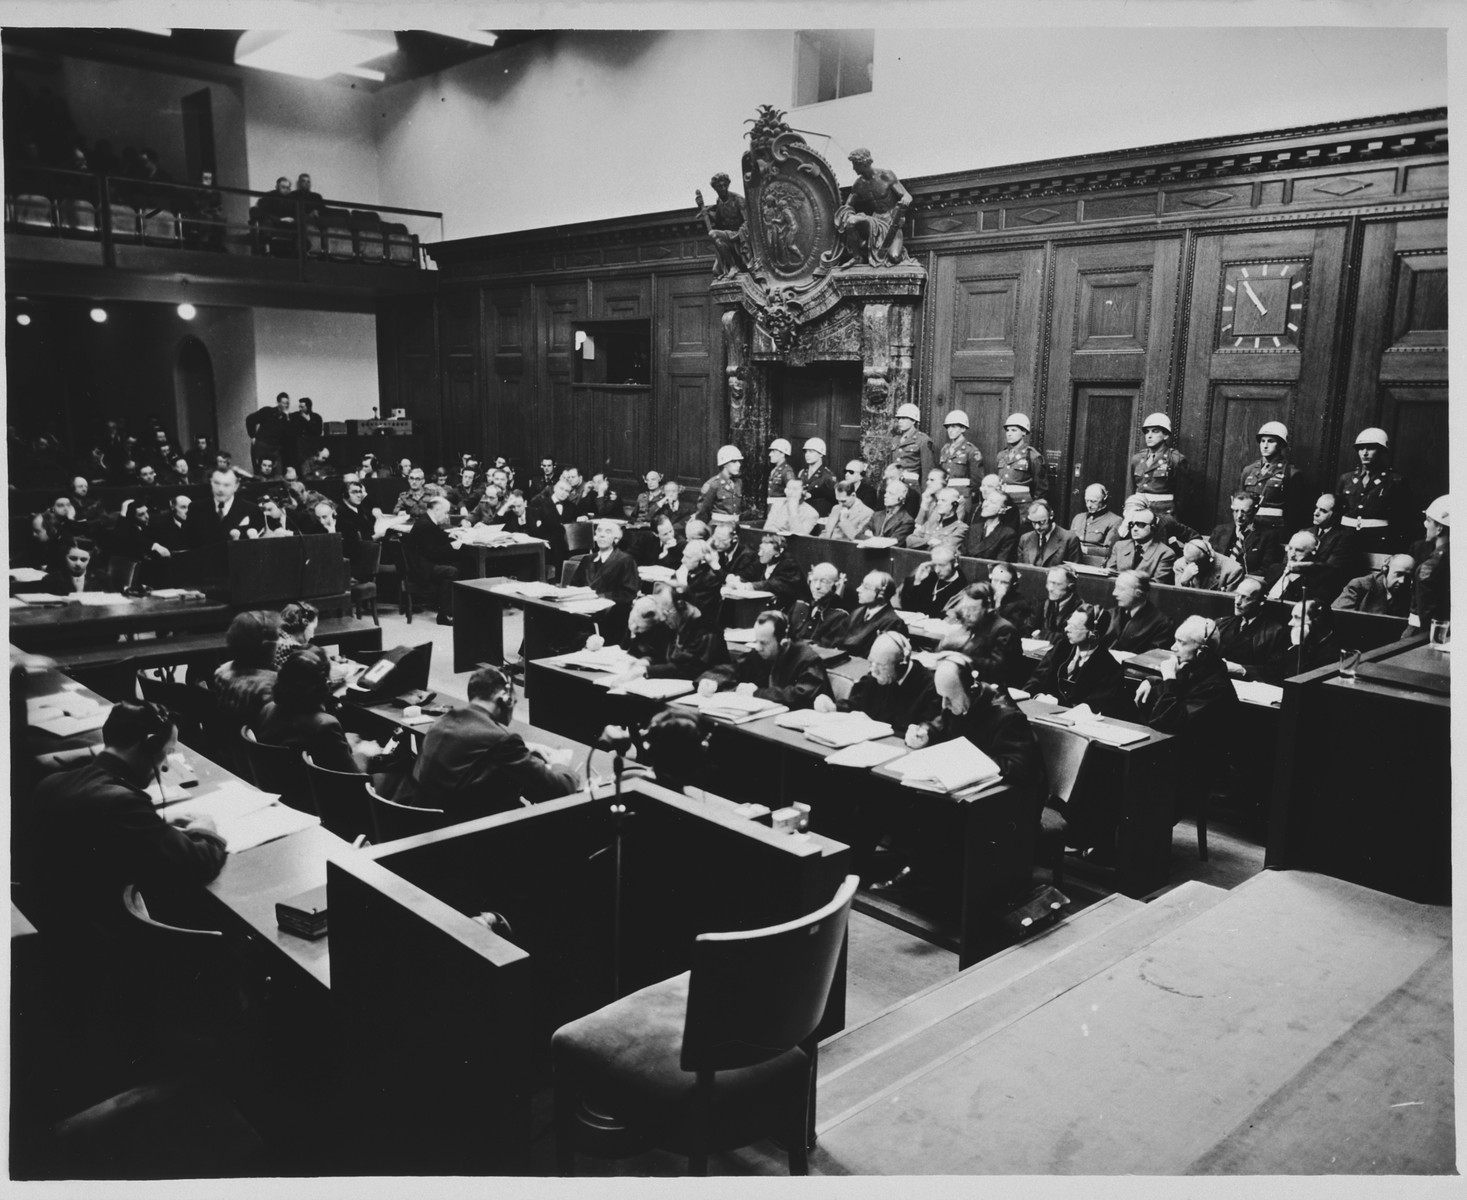 View of the courtroom during a session of the International Military Tribunal trial of war criminals at Nuremberg.  In the foreground is the witness chair.  In the background at the left, Justice Robert Jackson delivers his opening address.